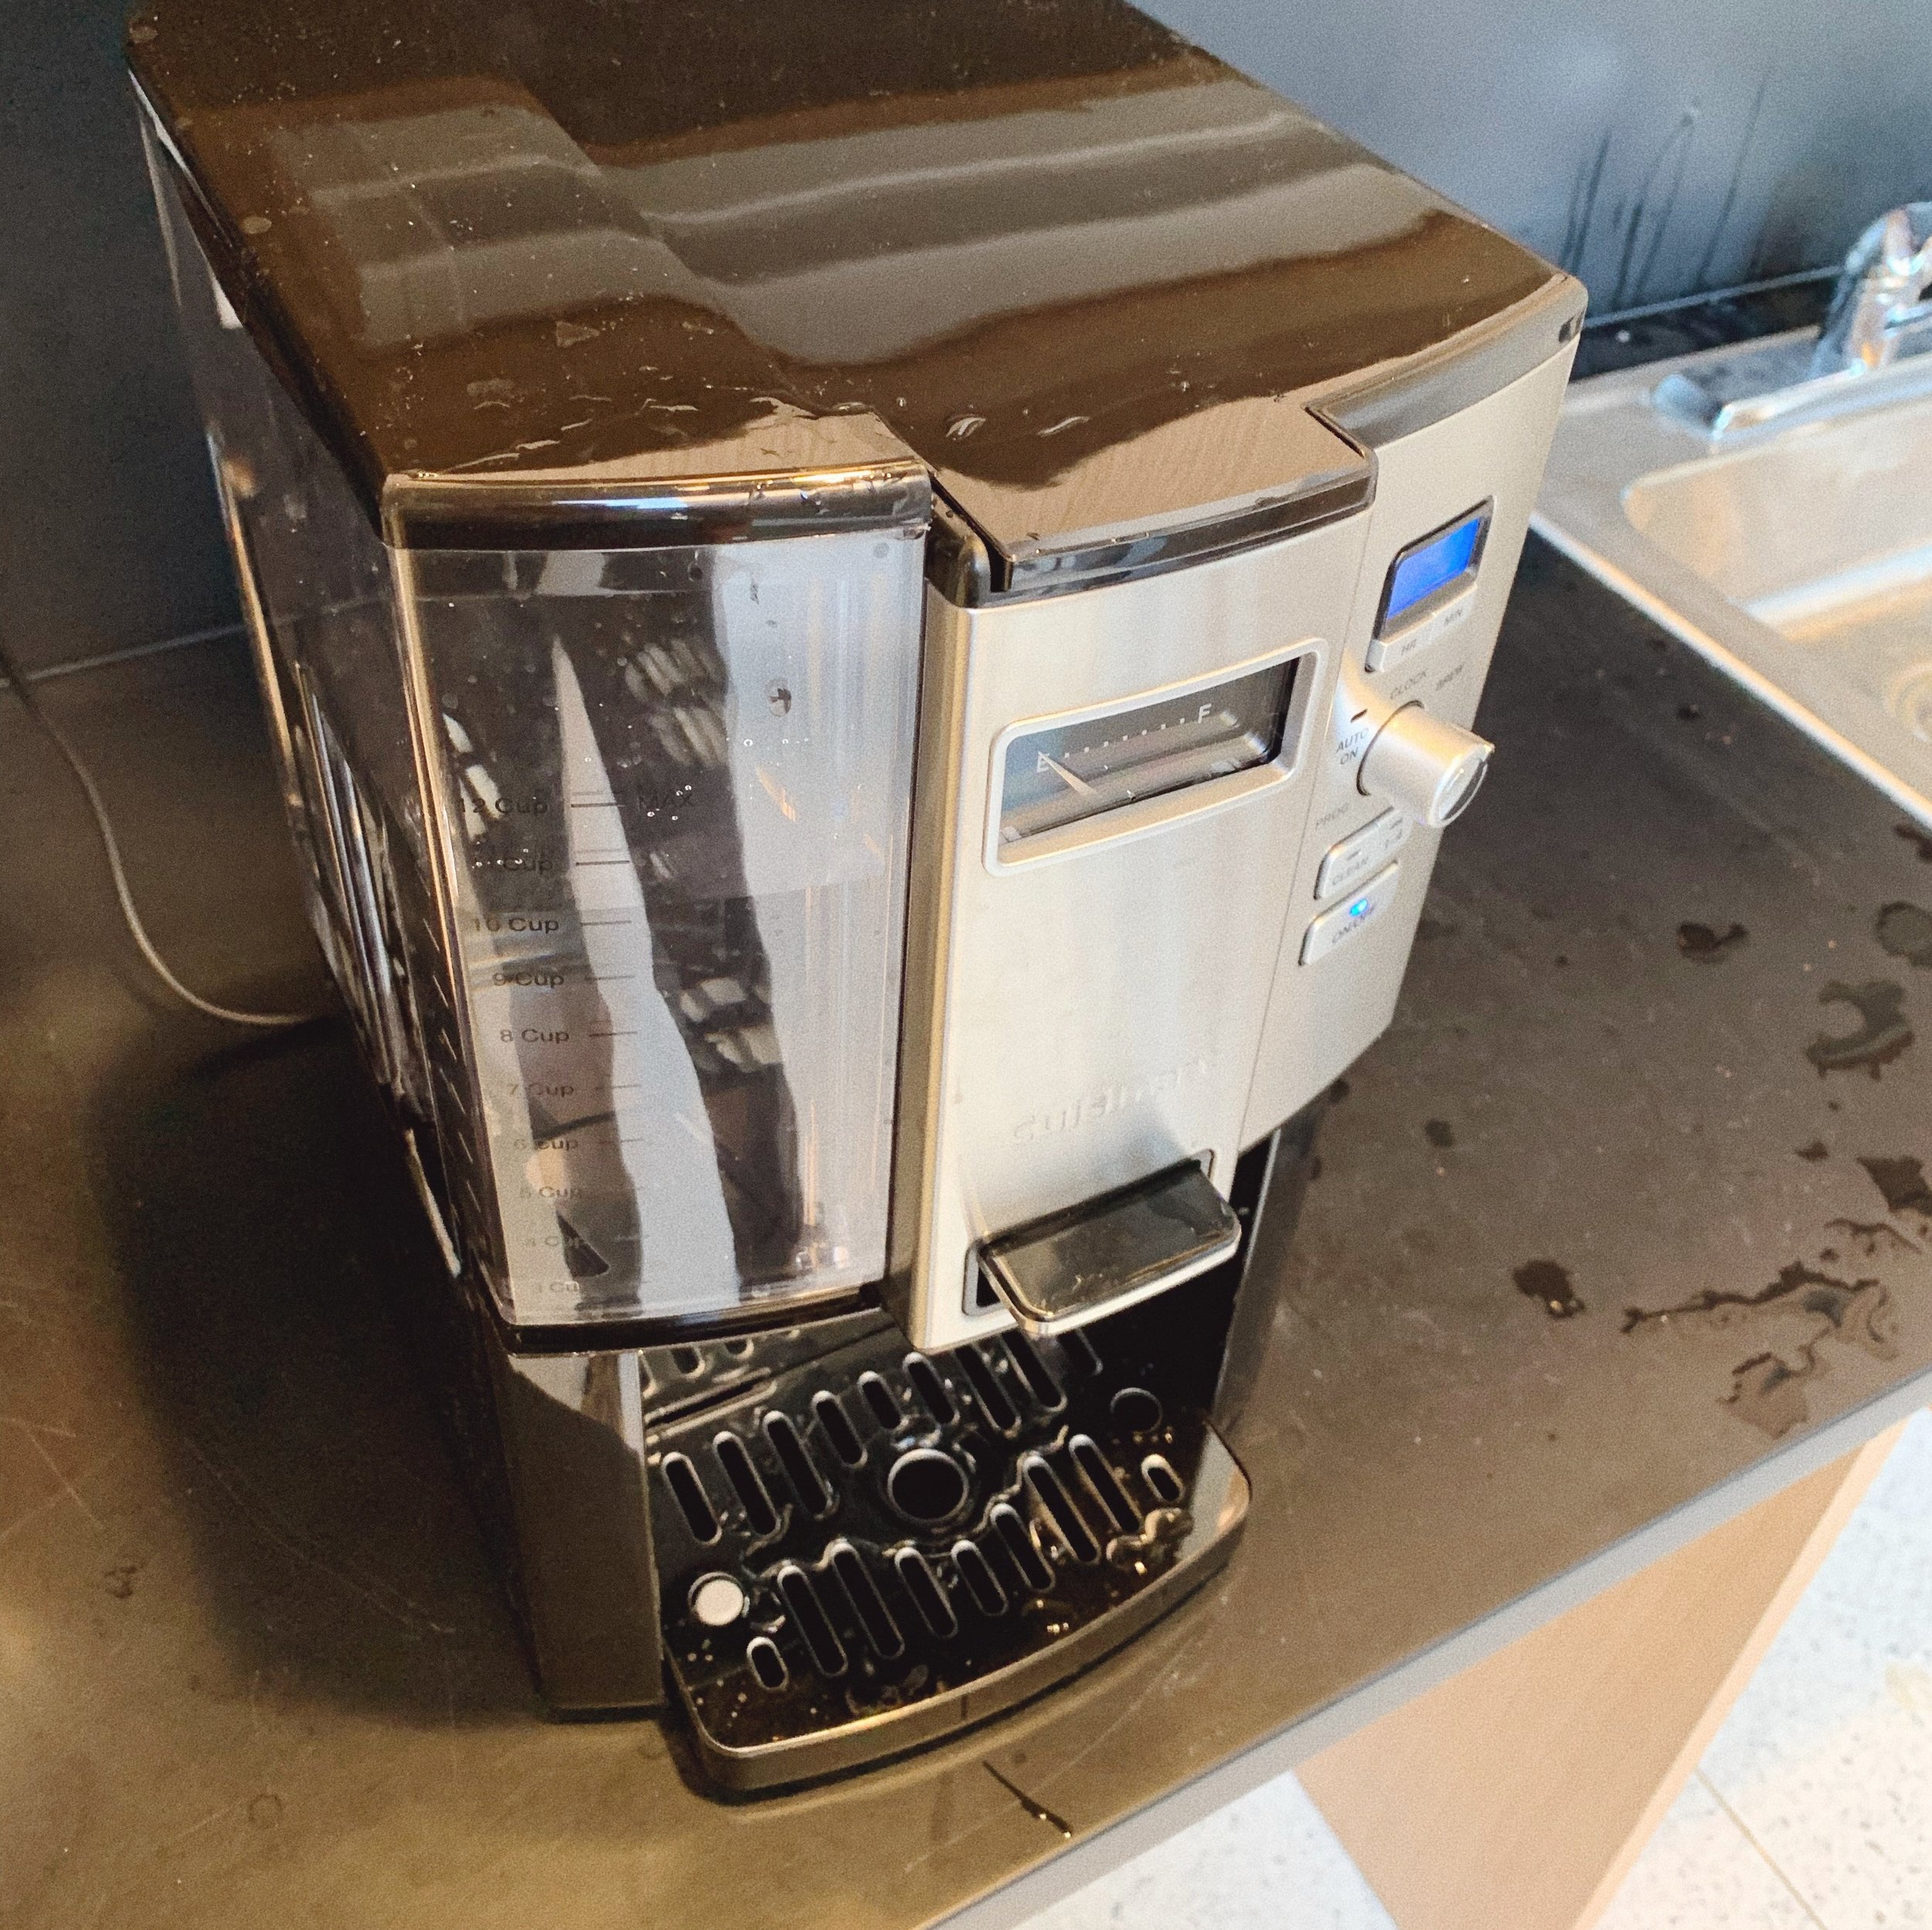 The Cuisinart Coffee on Demand DCC-3000 Brewer